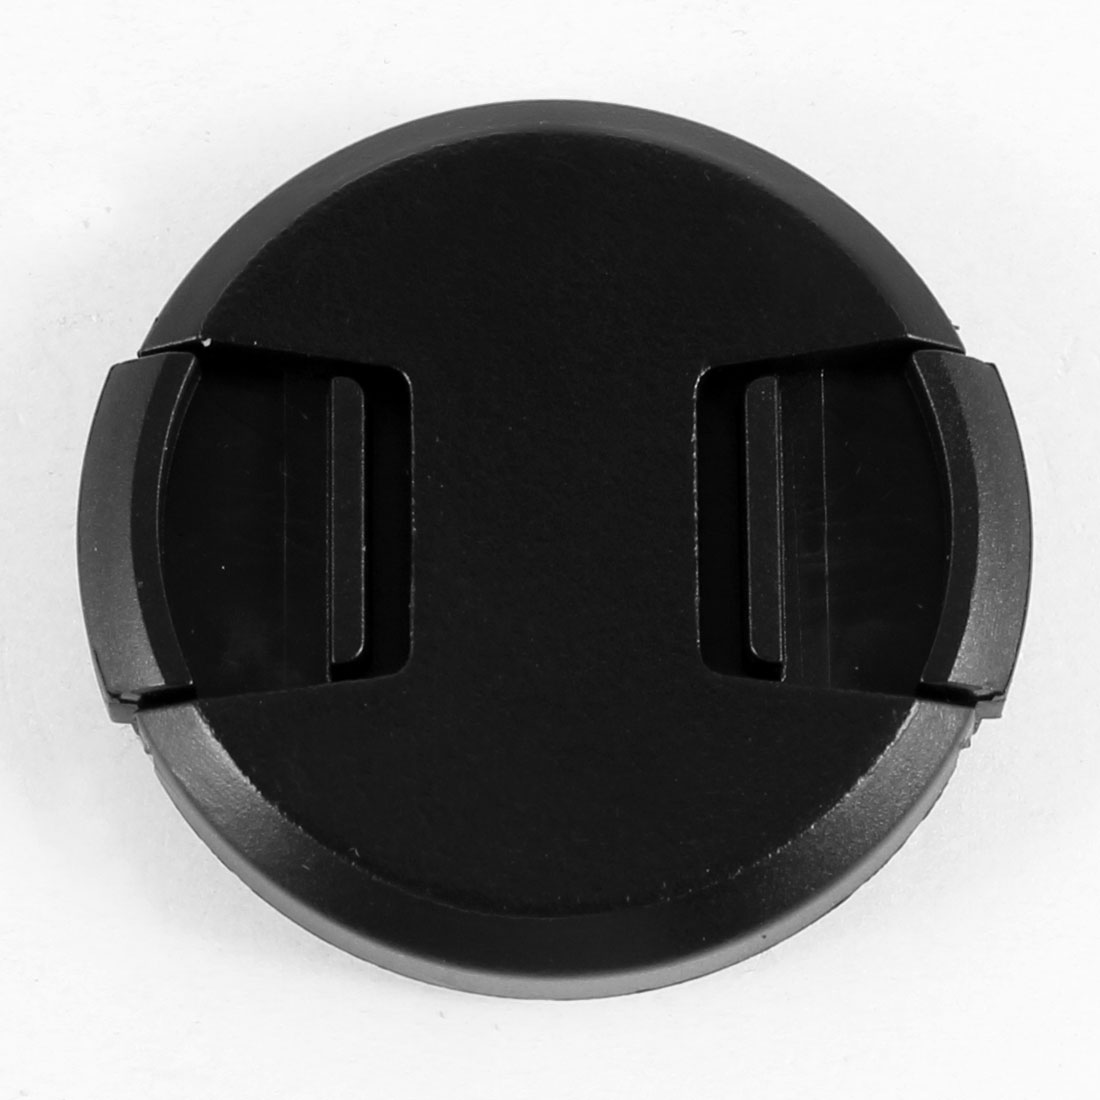 Unique Bargains Replacement Black 40.5mm Front Lens Cap Cover Protetcor for DSLR Camera